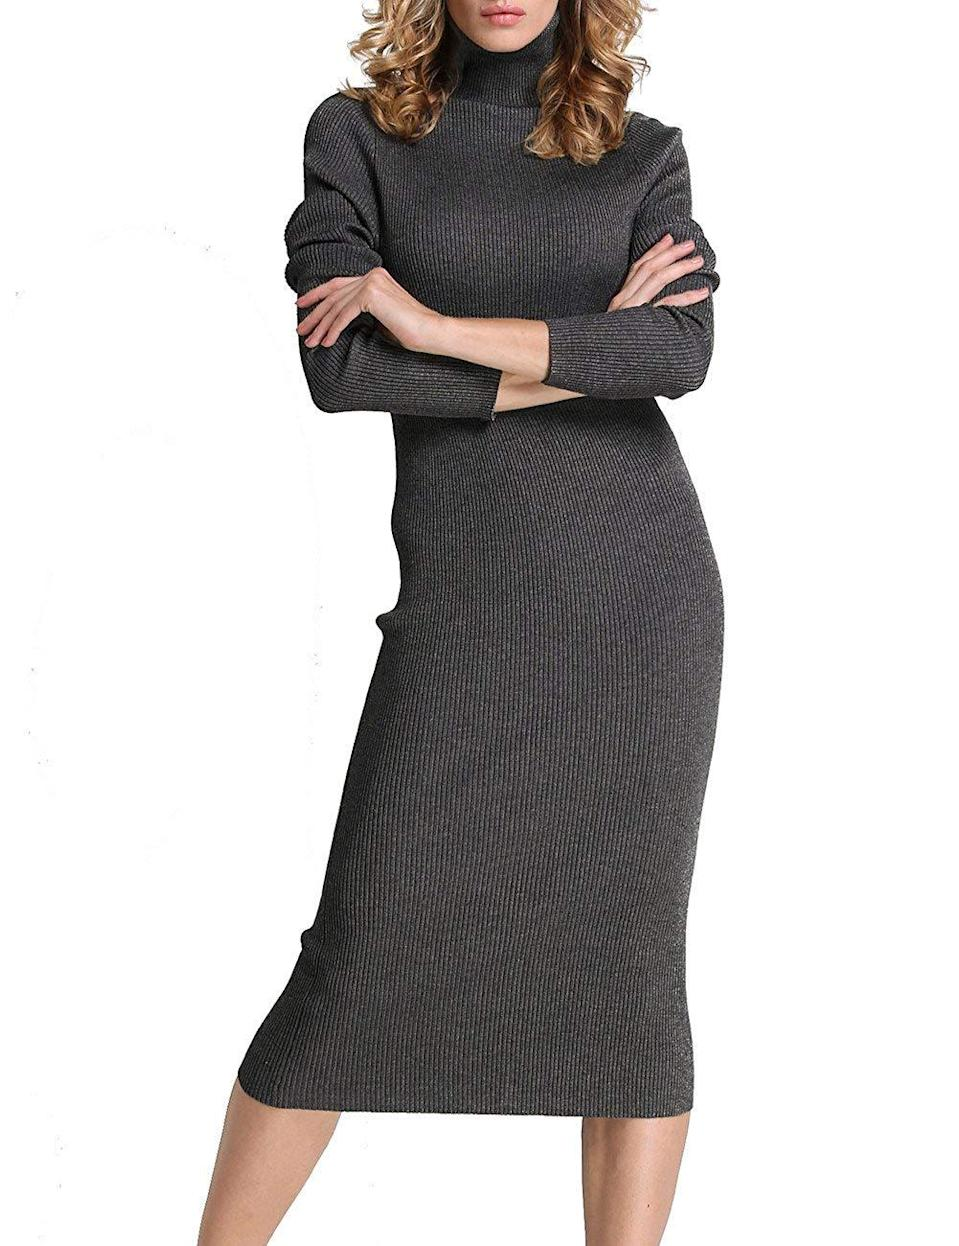 "<br><br><strong>Rocorose</strong> Ribbed Knit Long Sleeve Dress, $, available at <a href=""https://www.amazon.com/dp/B01N4K6QCW"" rel=""nofollow noopener"" target=""_blank"" data-ylk=""slk:Amazon"" class=""link rapid-noclick-resp"">Amazon</a>"